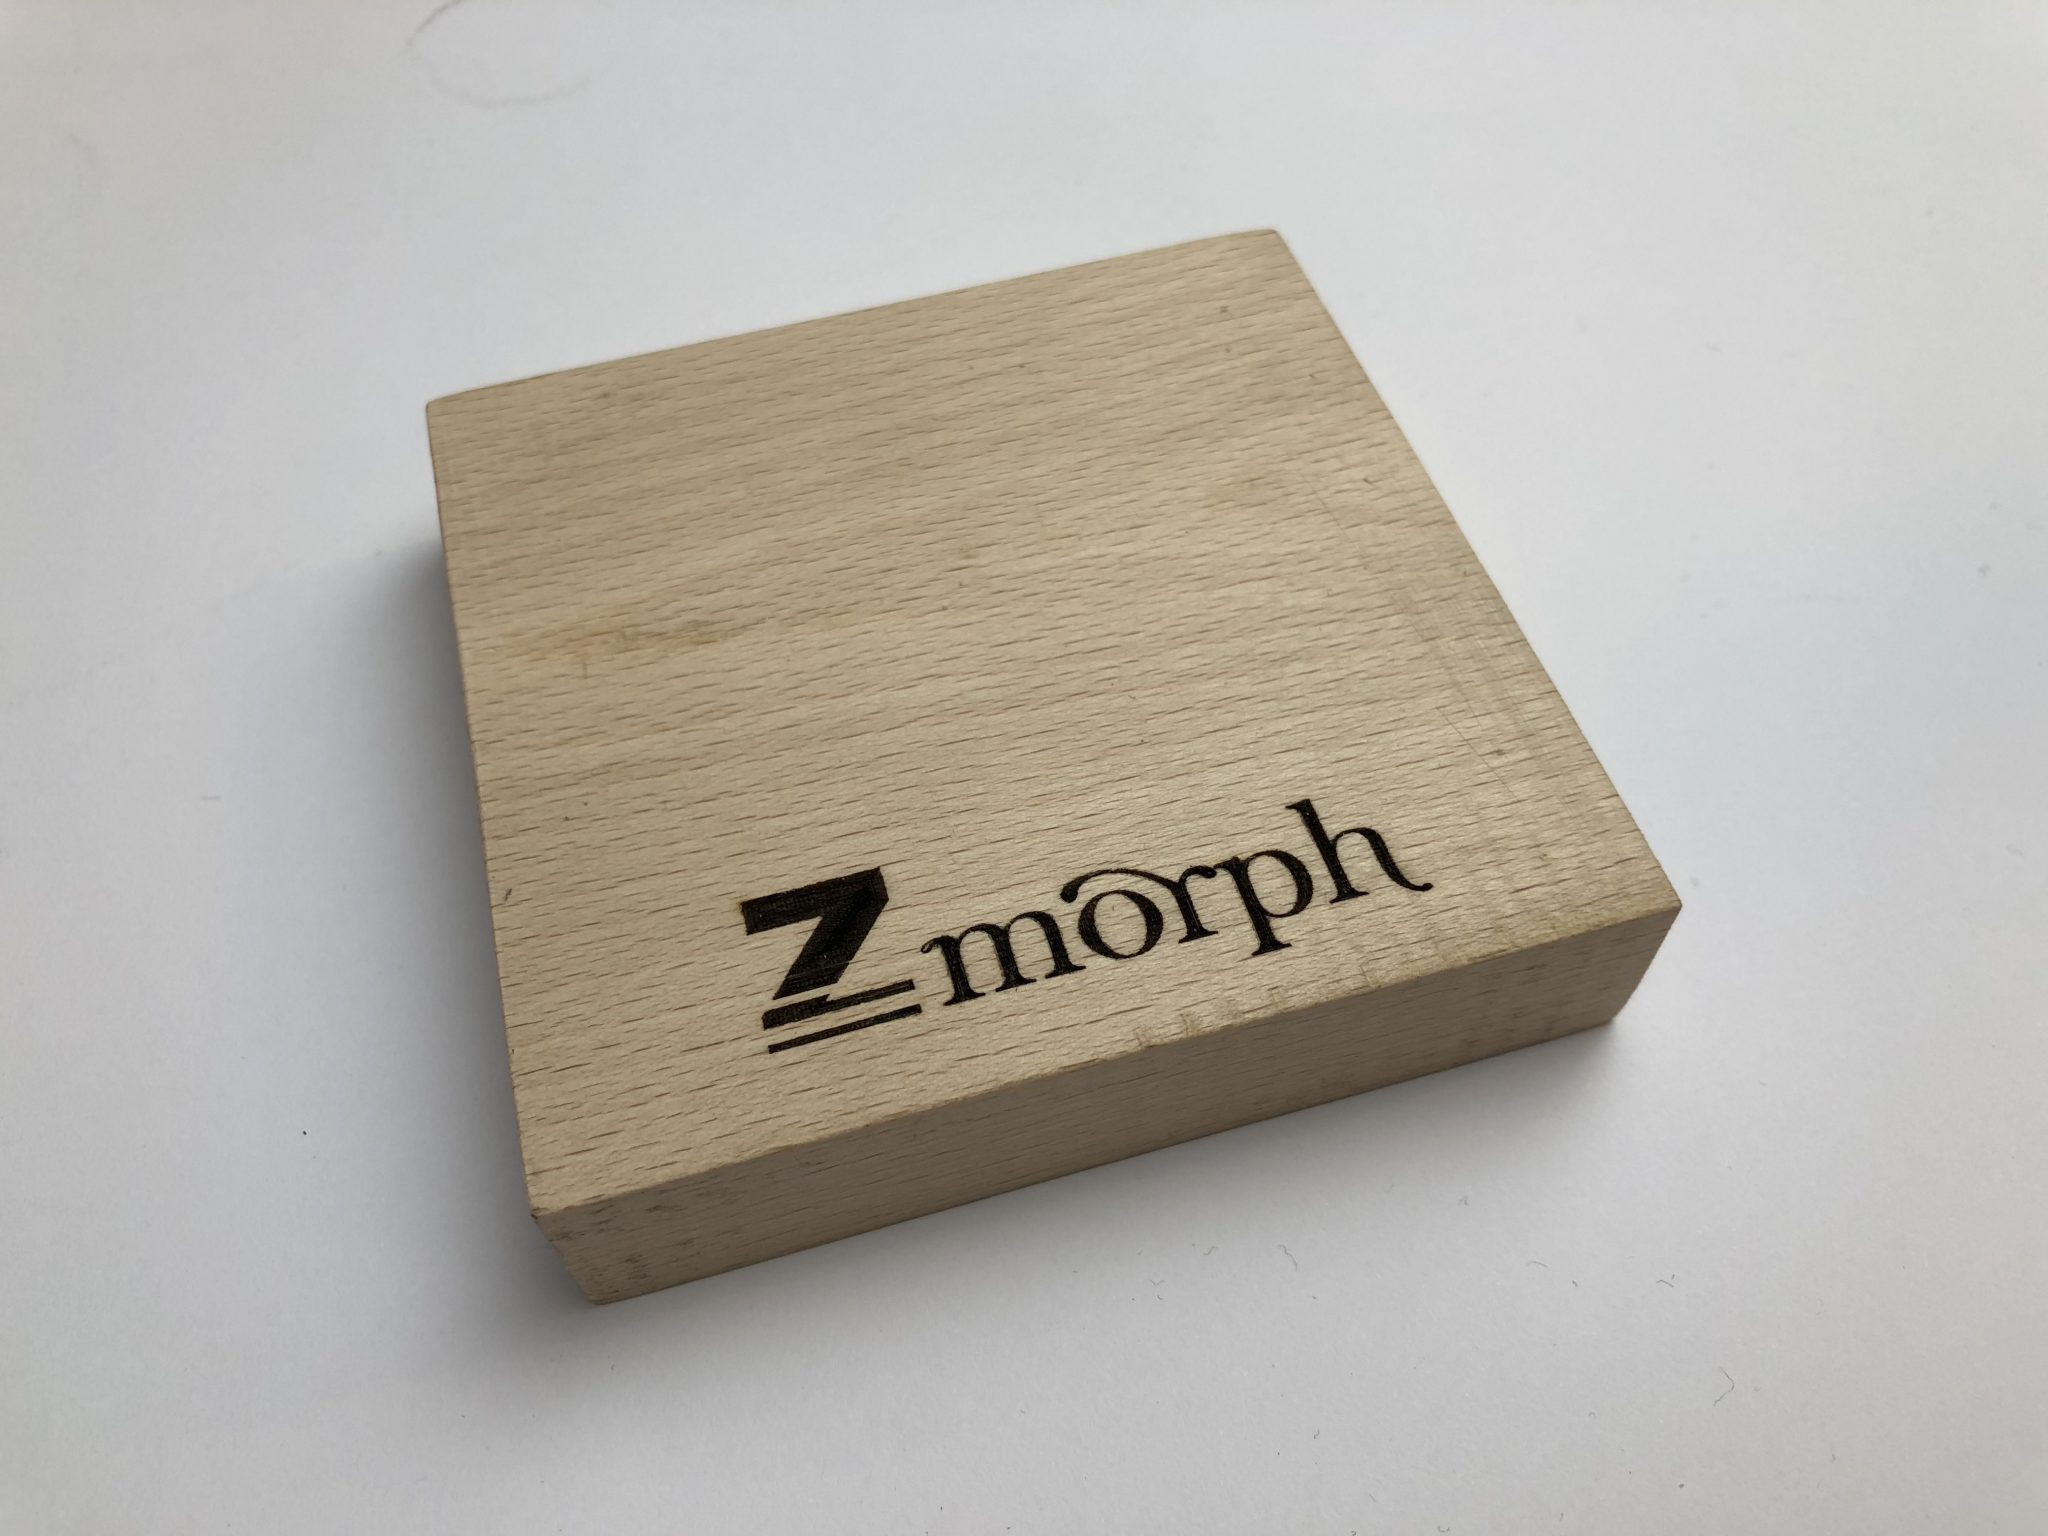 Laser engraving test on the ZMoph VX. Photo via ZMorph